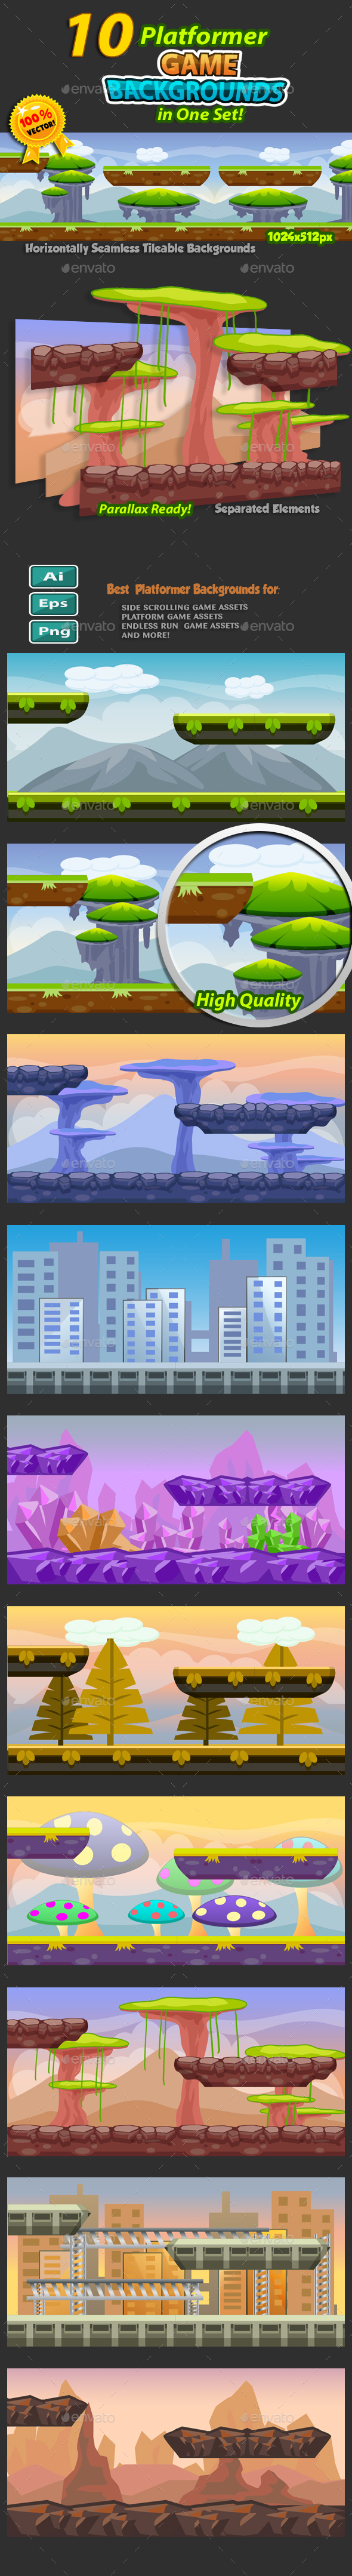 10 Platformer Game Backgrounds Set 02 - Backgrounds Game Assets